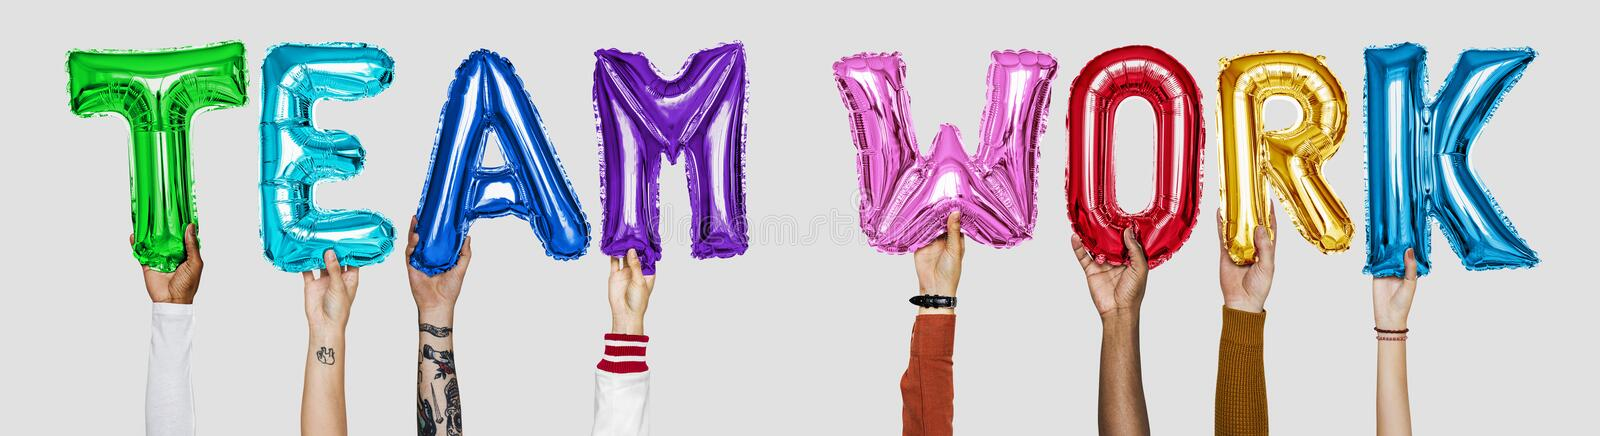 Colorful alphabet helium balloons forming the text teamwork stock photos